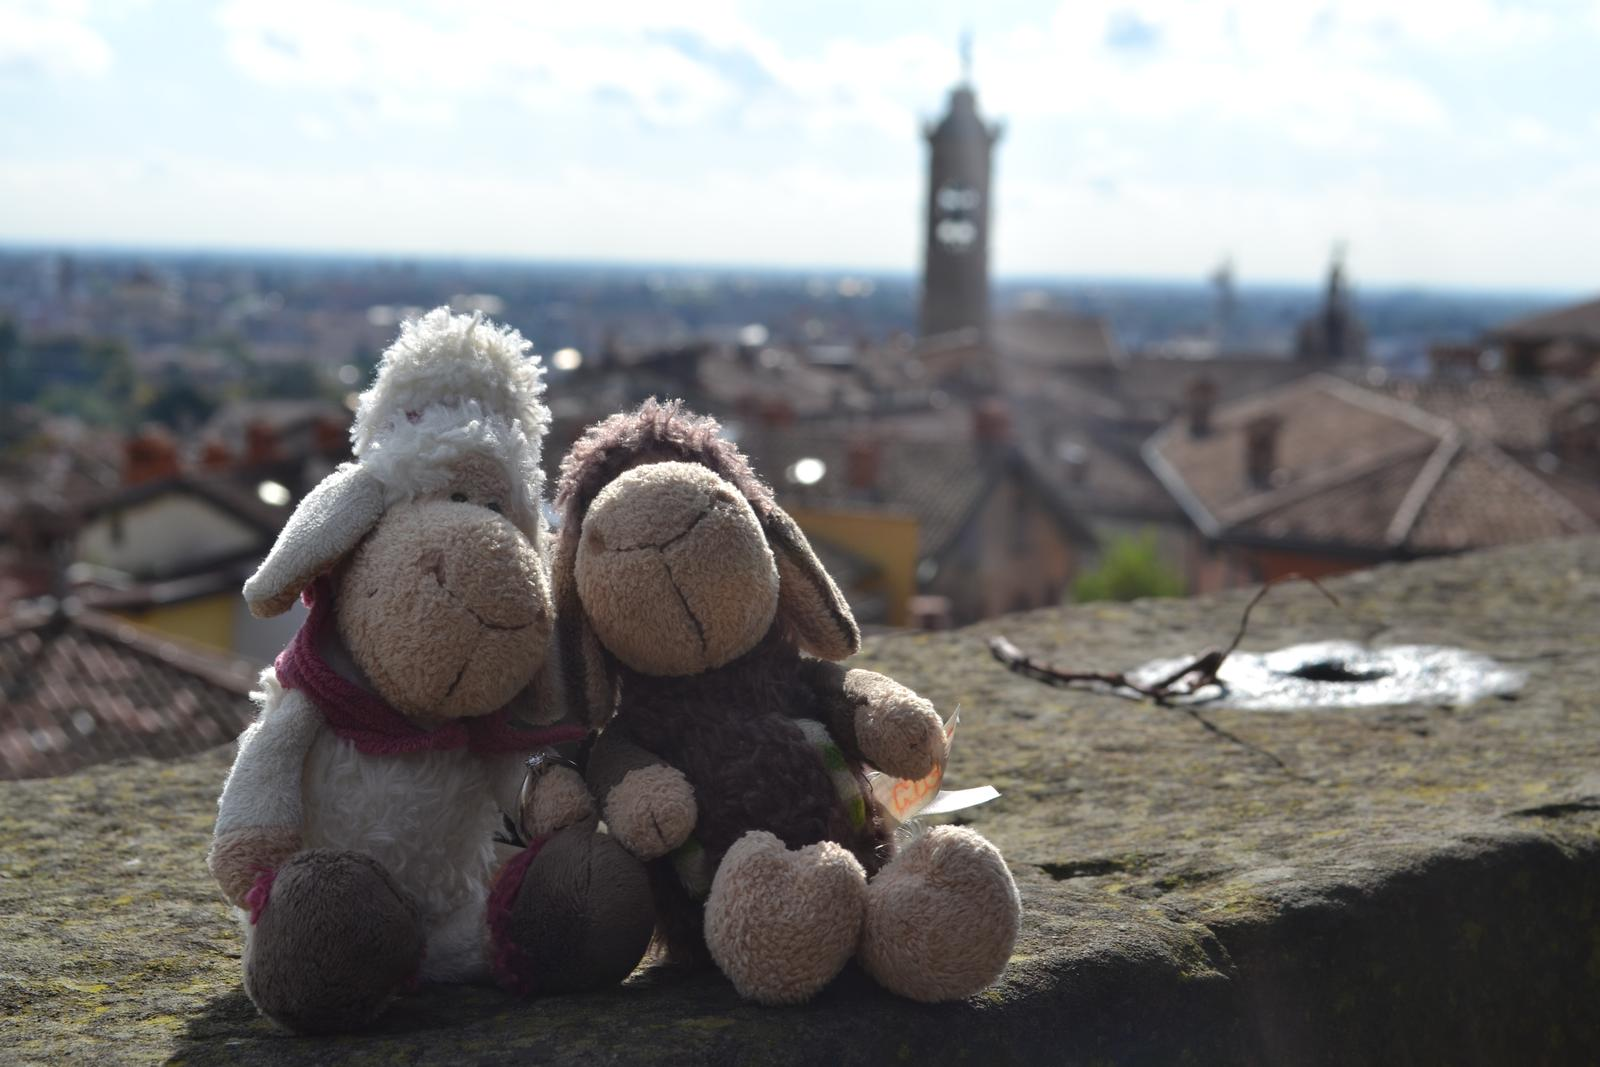 The First Day of Forever ♥ - 11.10.2013 Bergamo